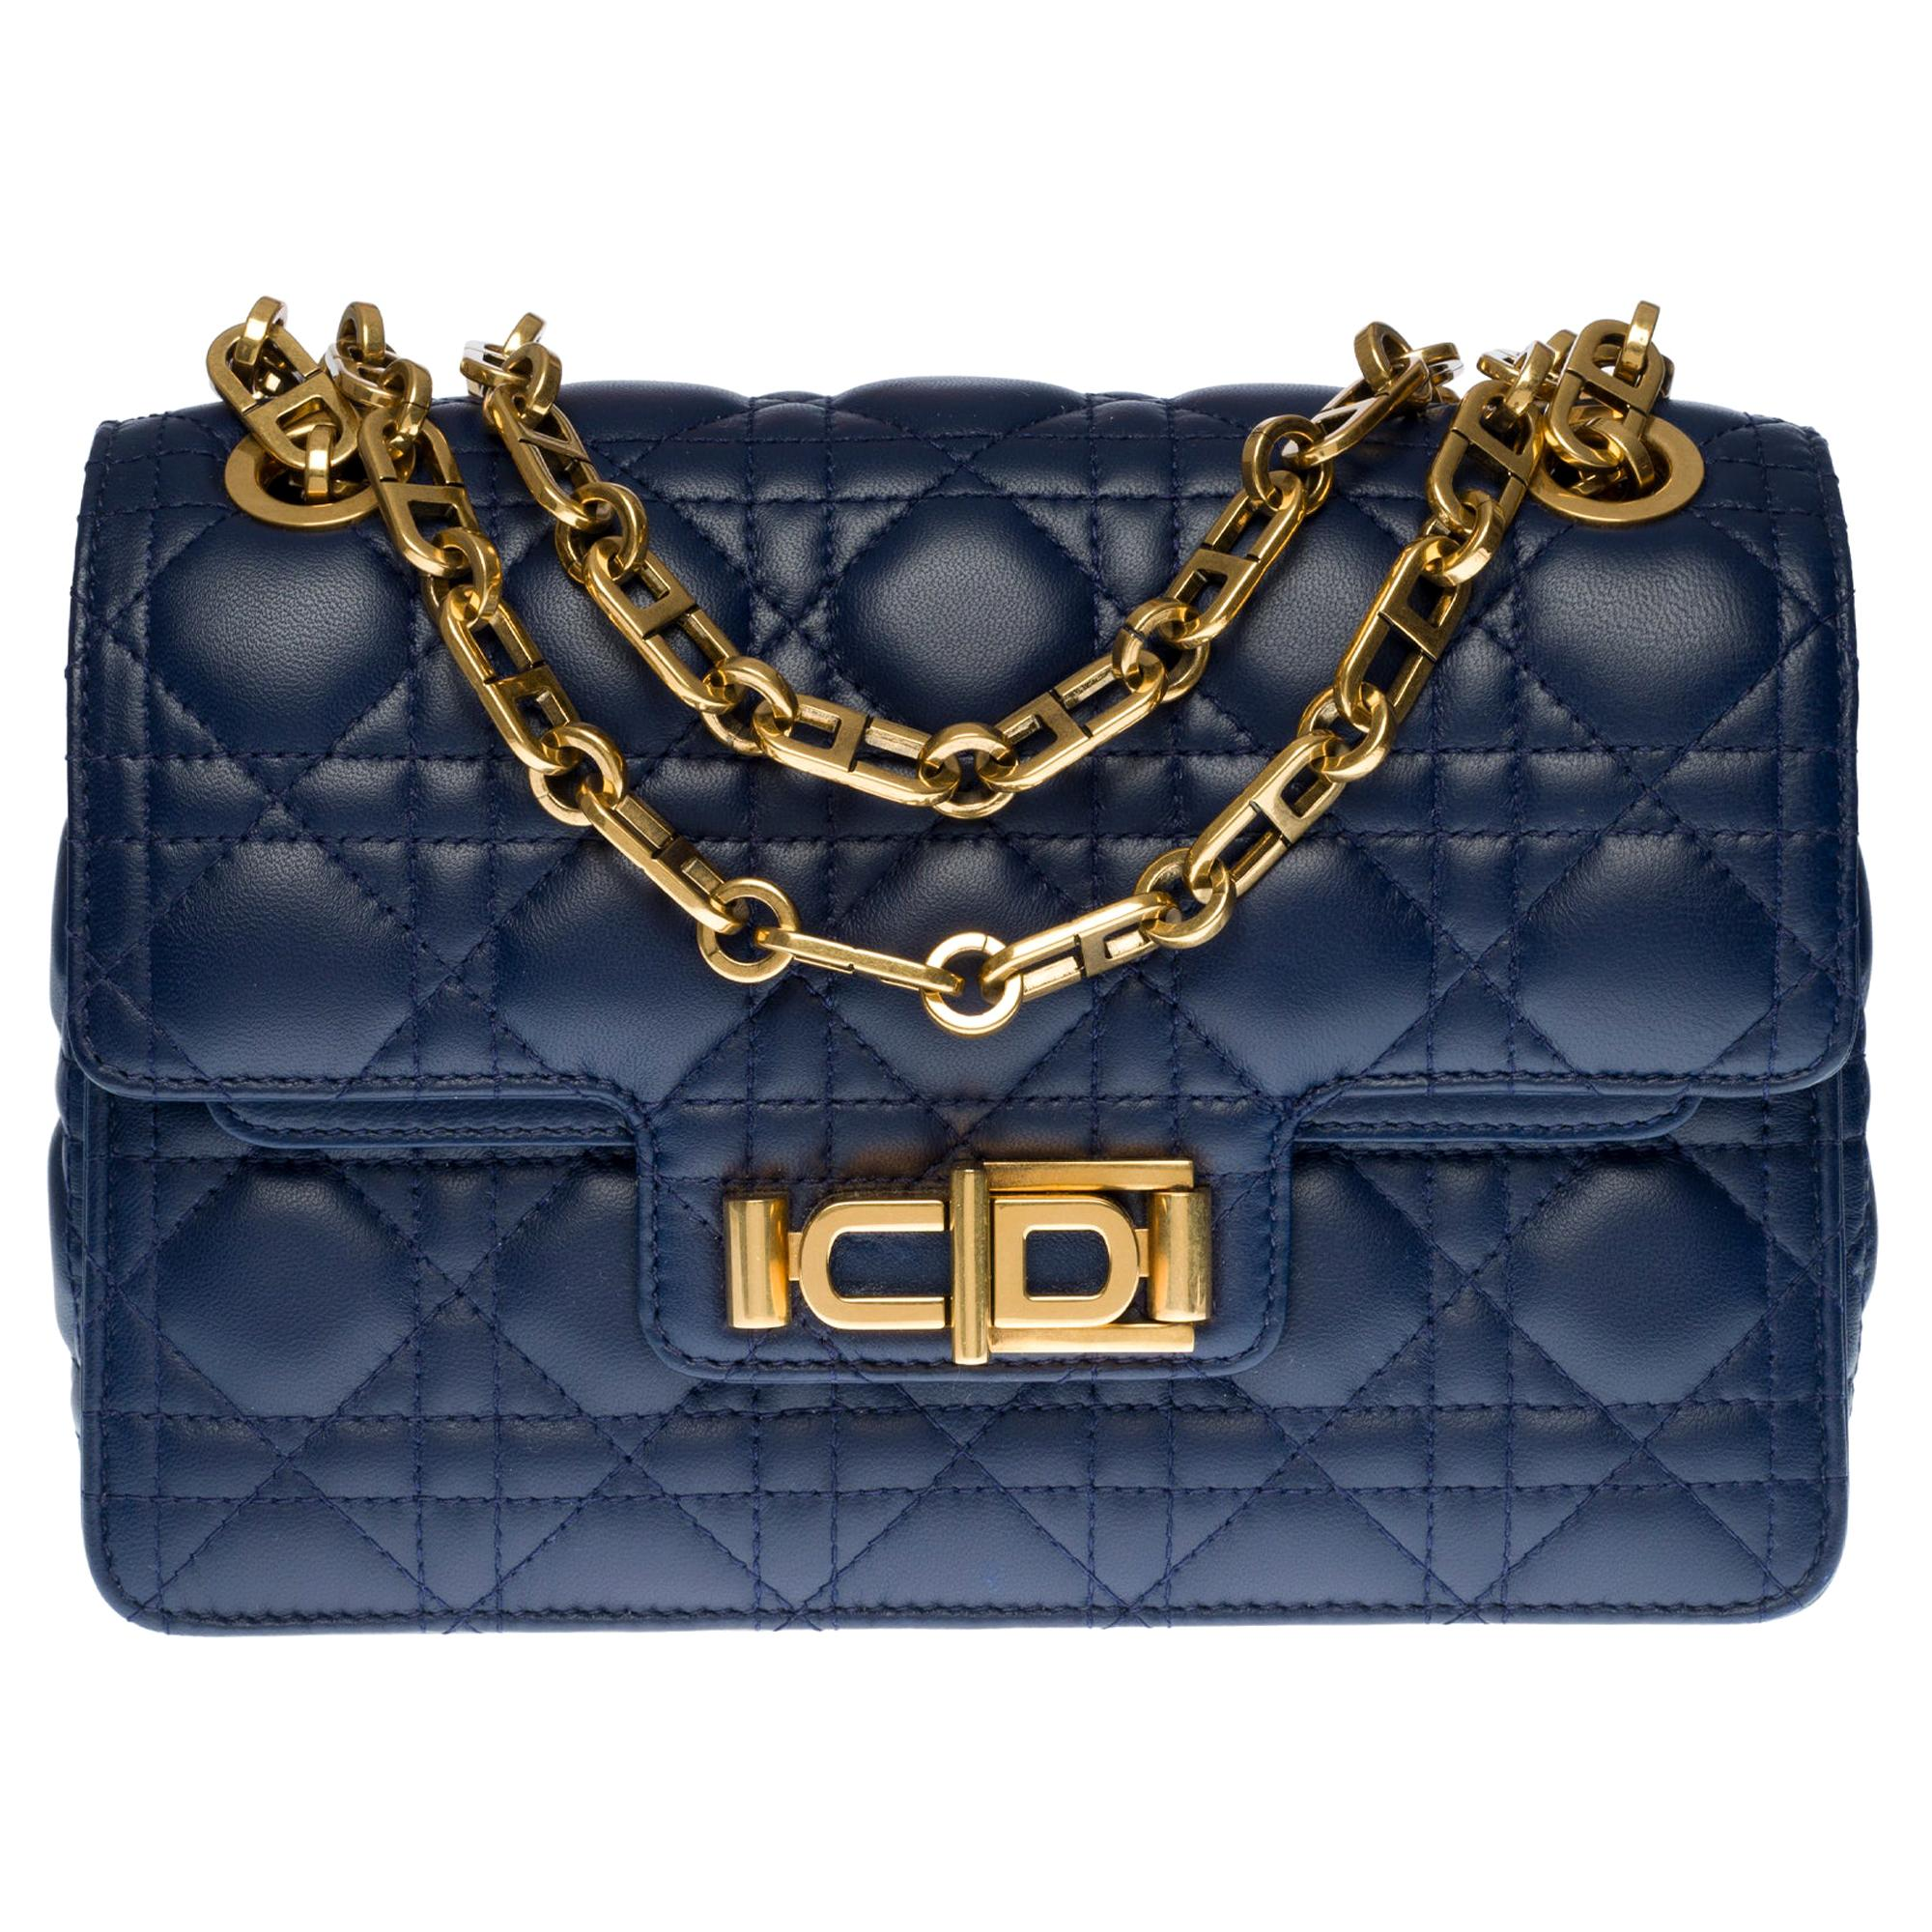 New /Christian Dior Miss Dior Shoulder bag in Navy Blue cannage leather, GHW